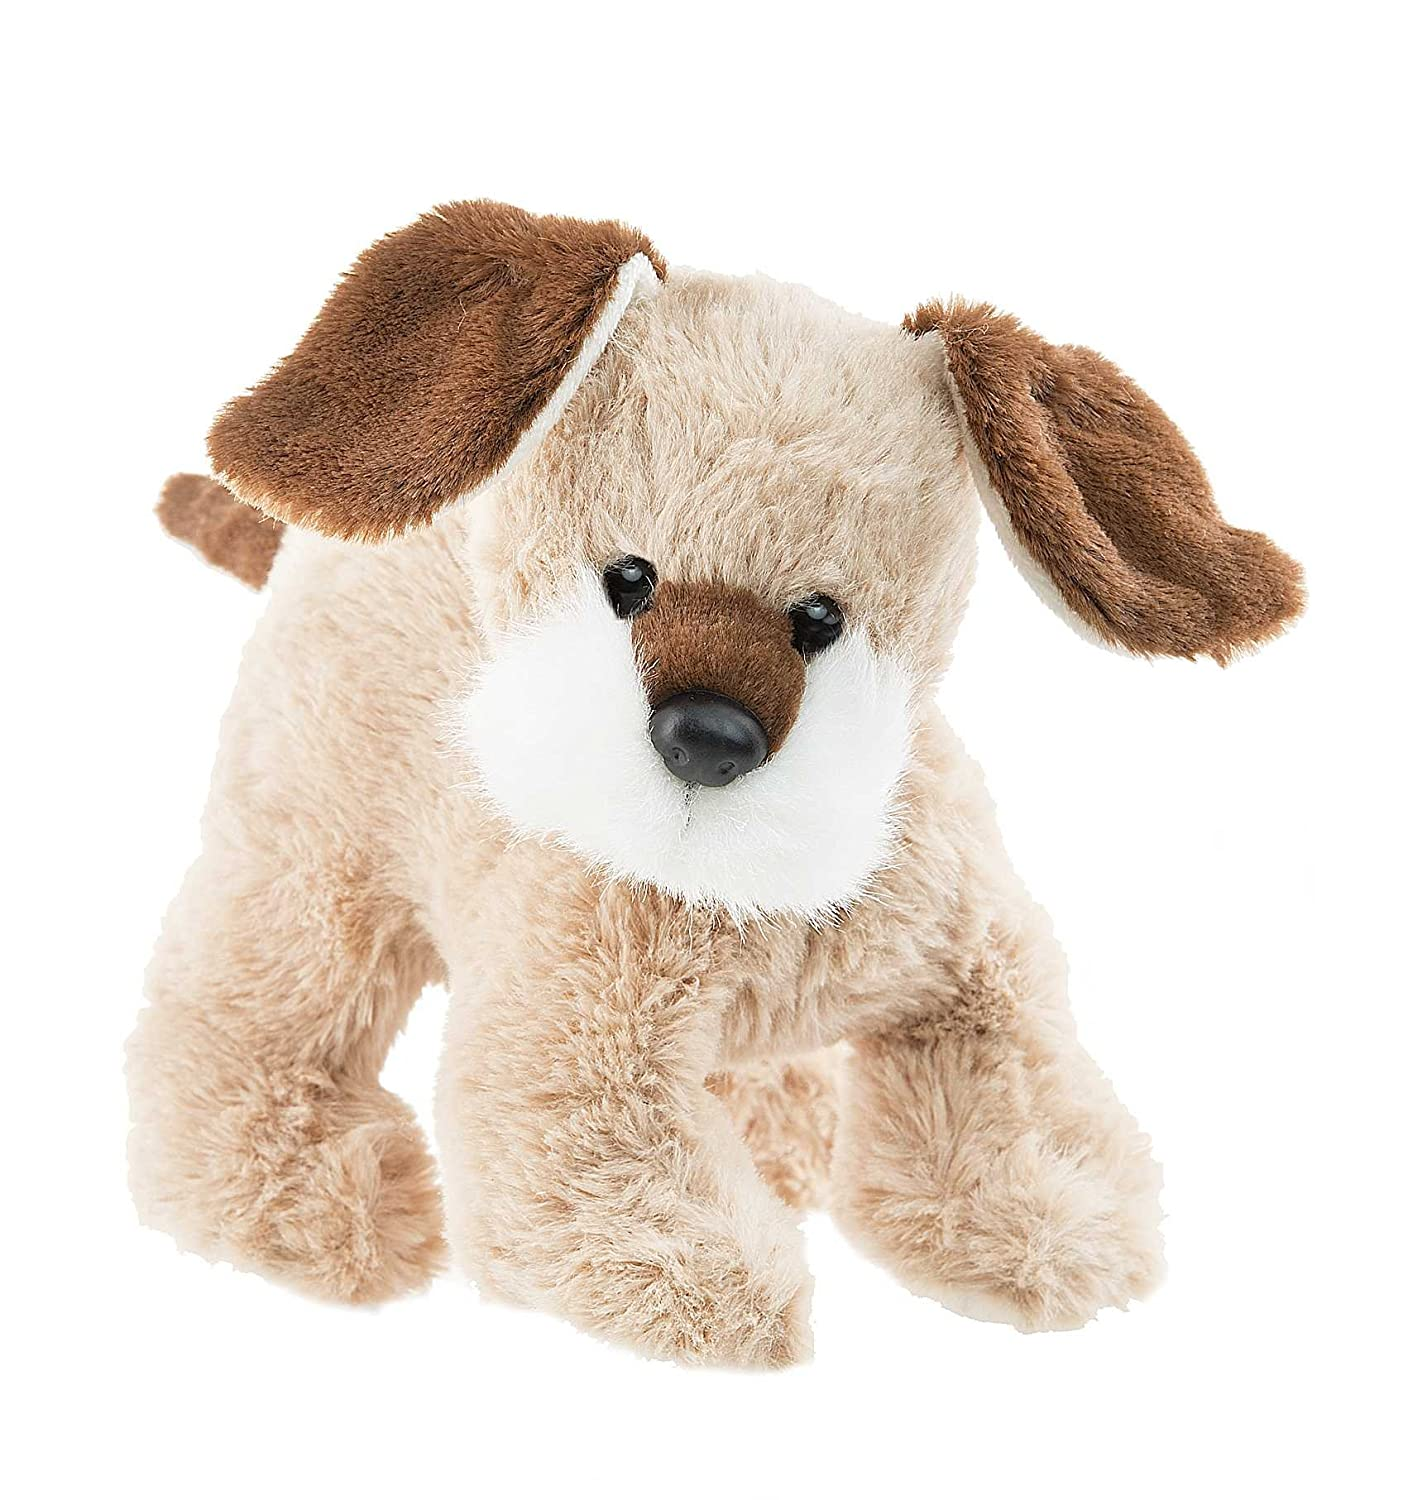 Ganz Webkinz Brown Sugar Puppy Plush by Ganz